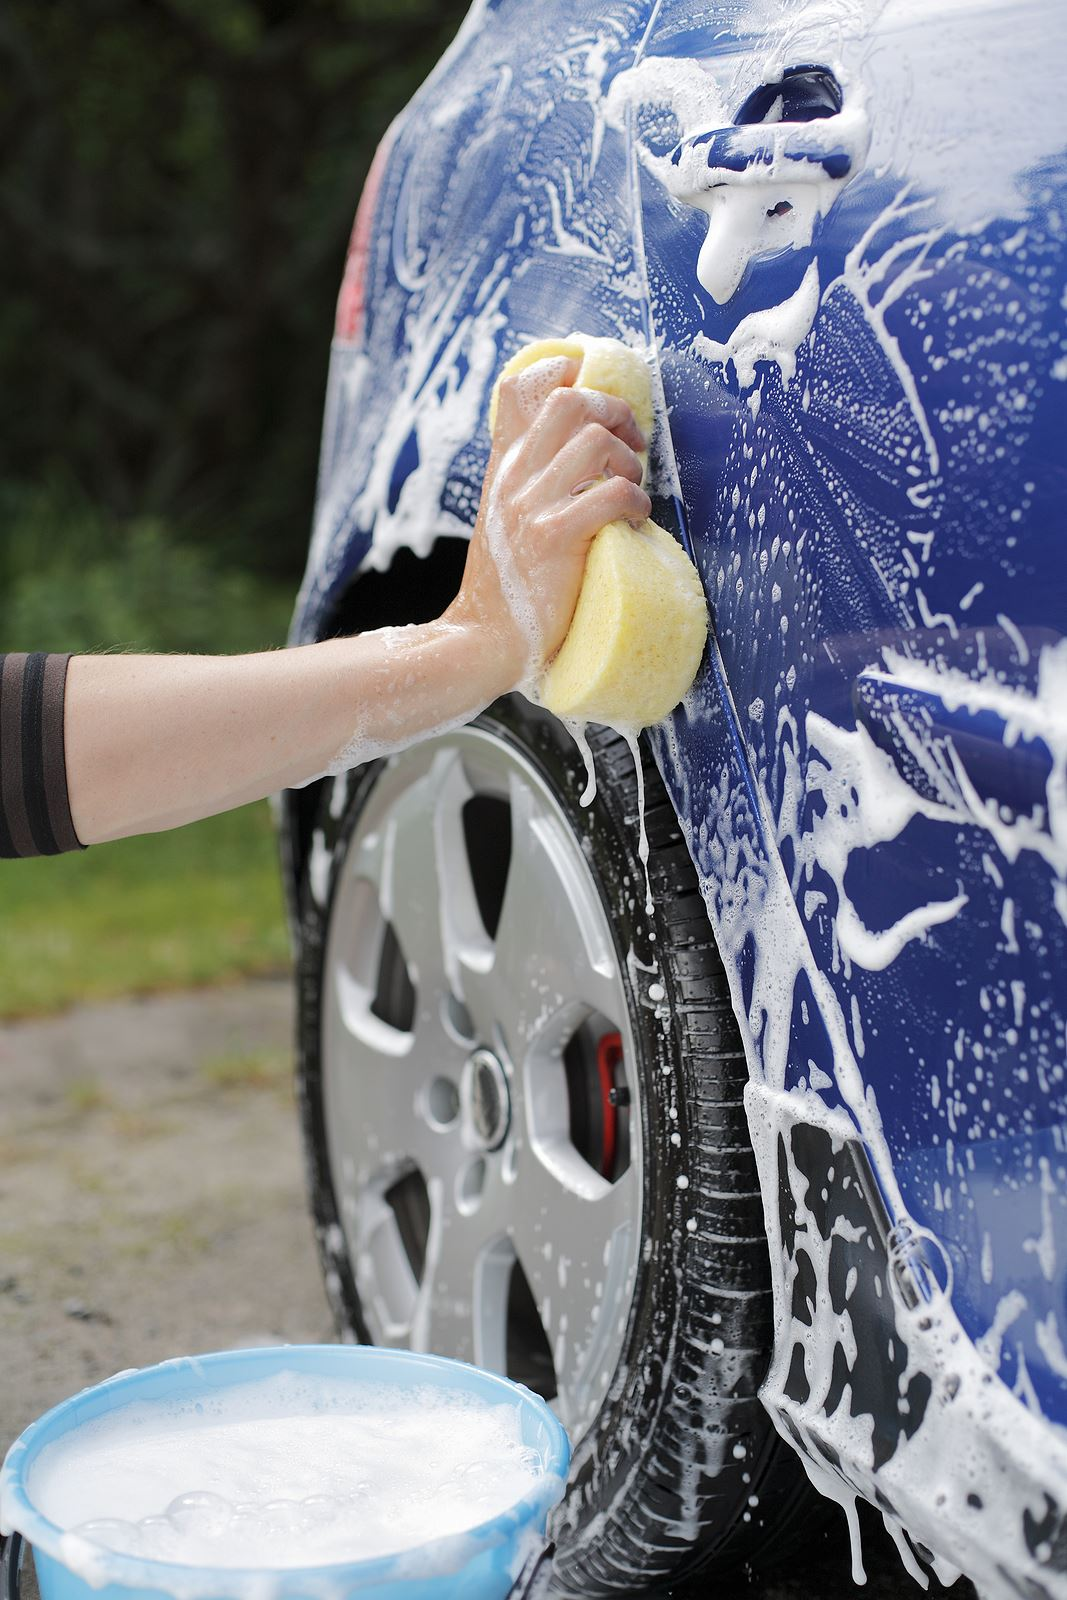 bigstock-Car-Wash-5550426